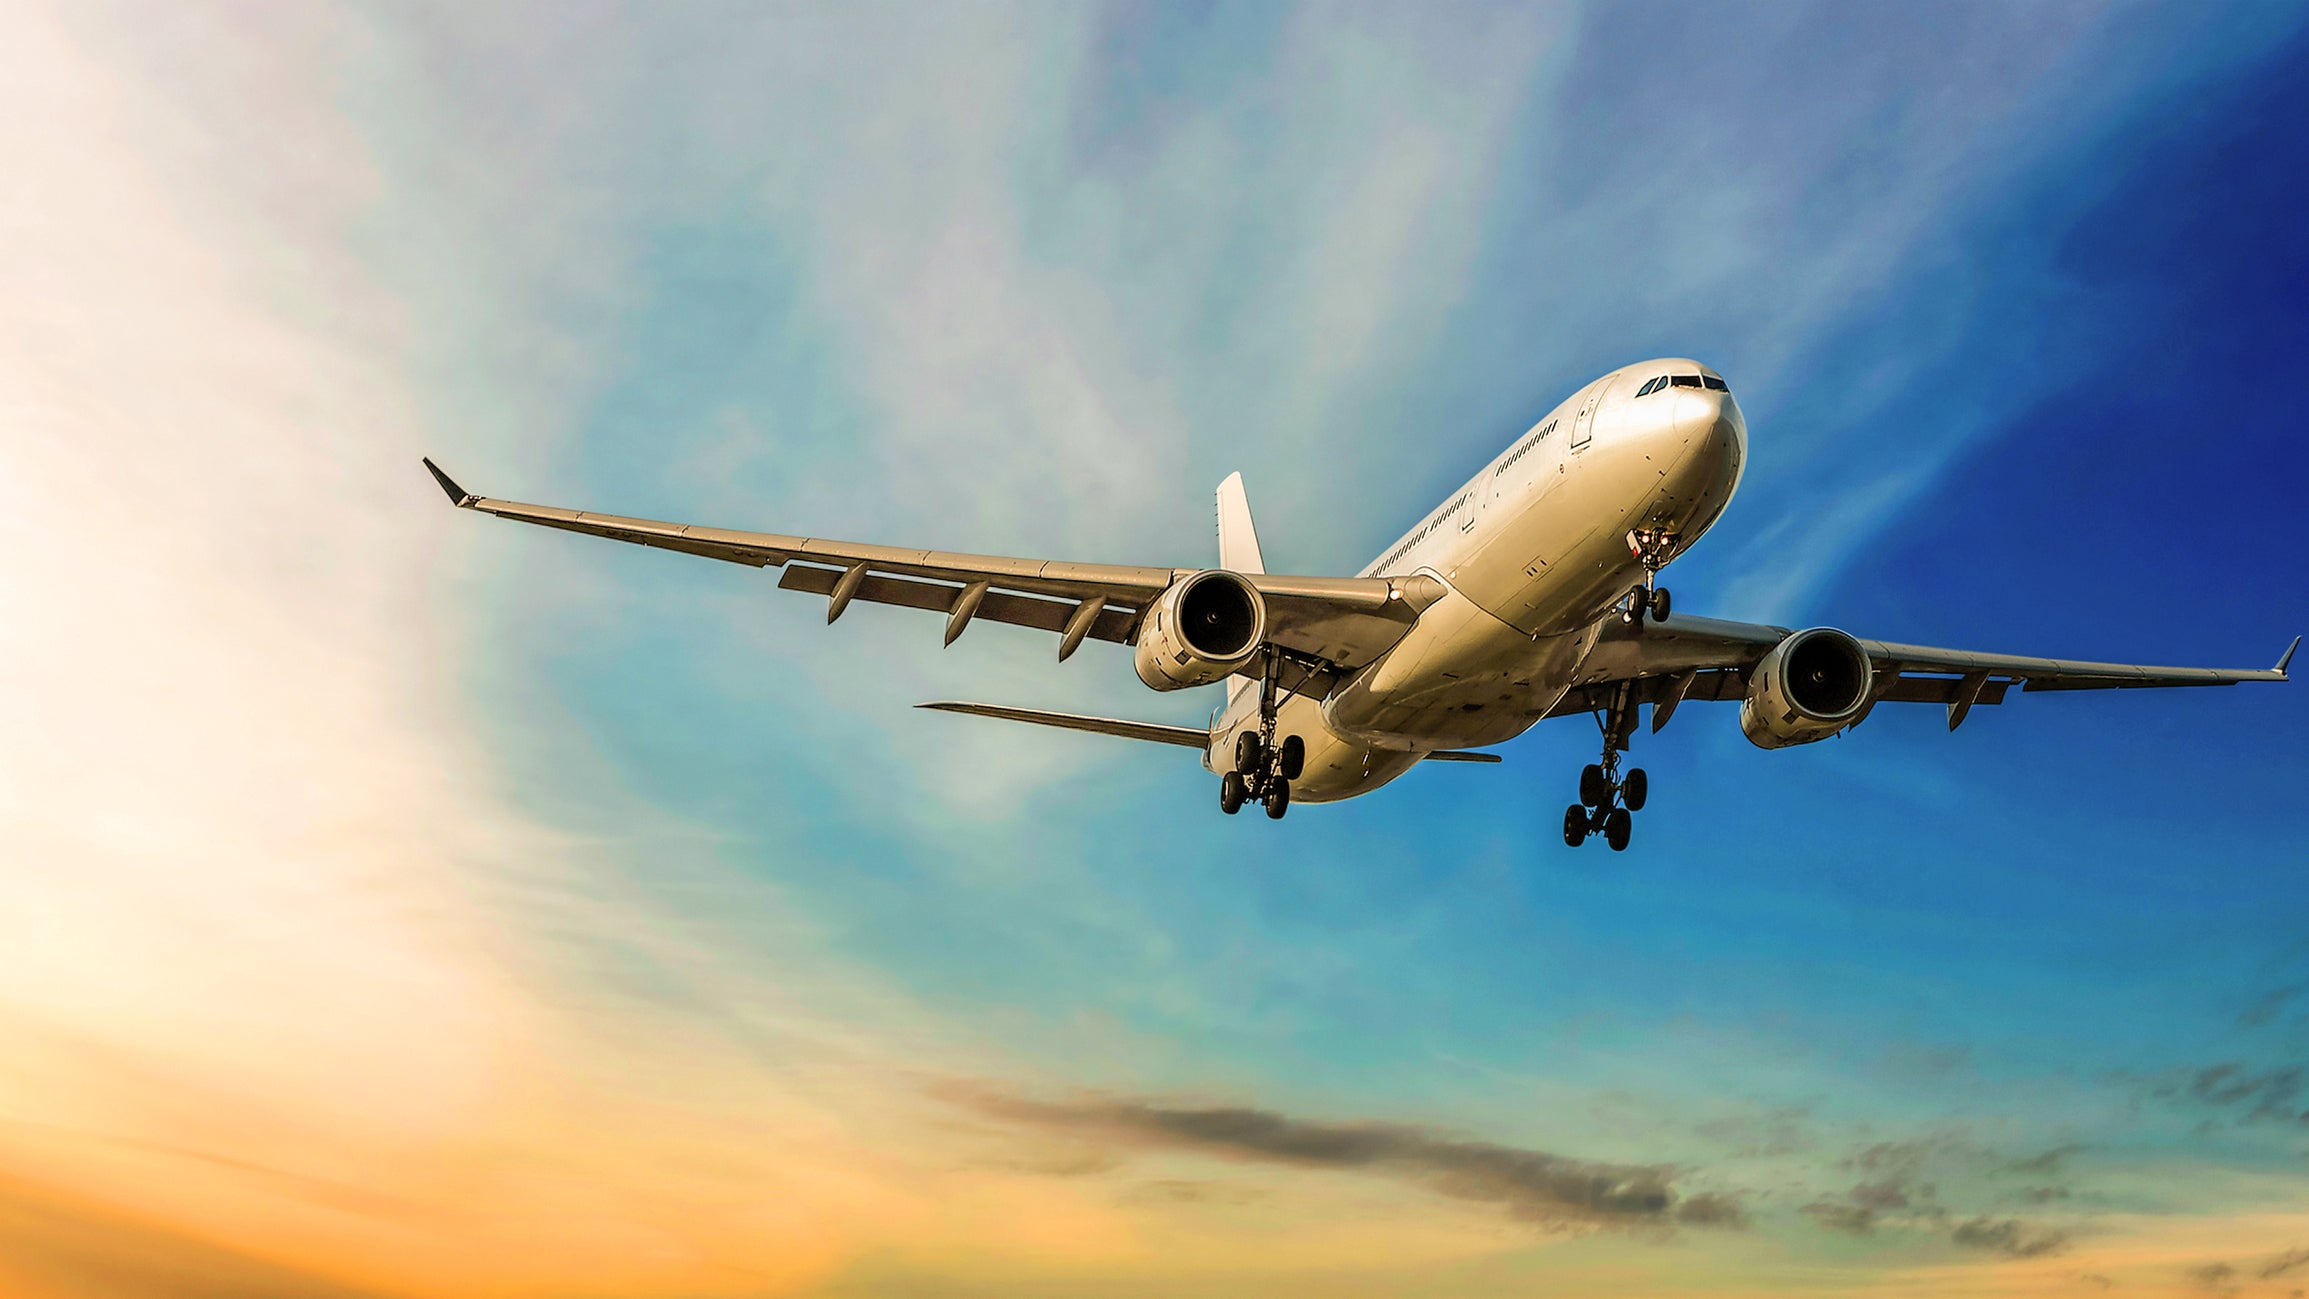 The Department of Transportation Just Gave Airline Stocks 3 Huge Wins   The Motley Fool